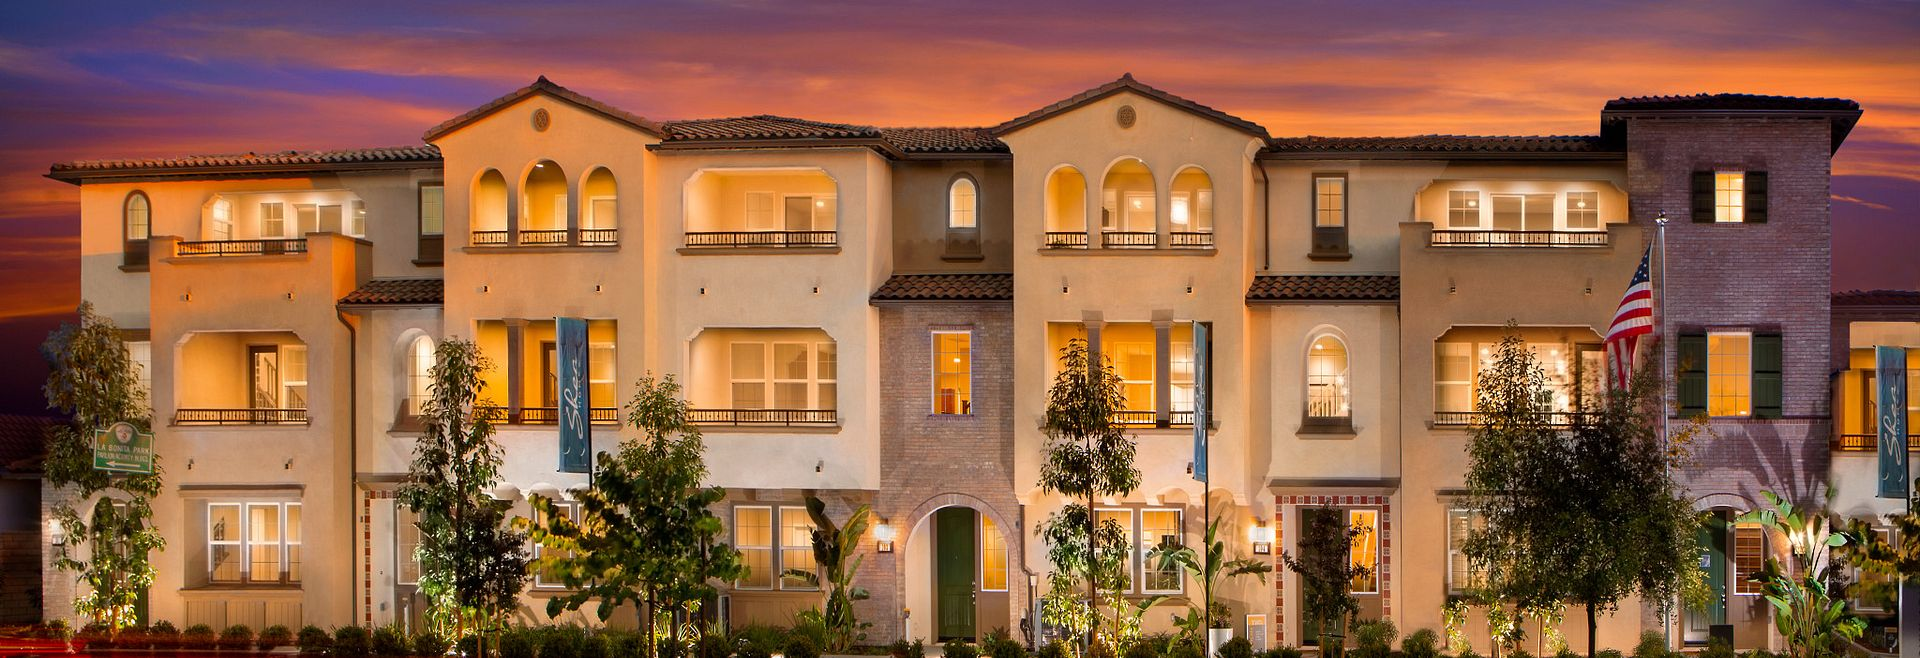 Skylark by Shea Homes in La Habra, CA